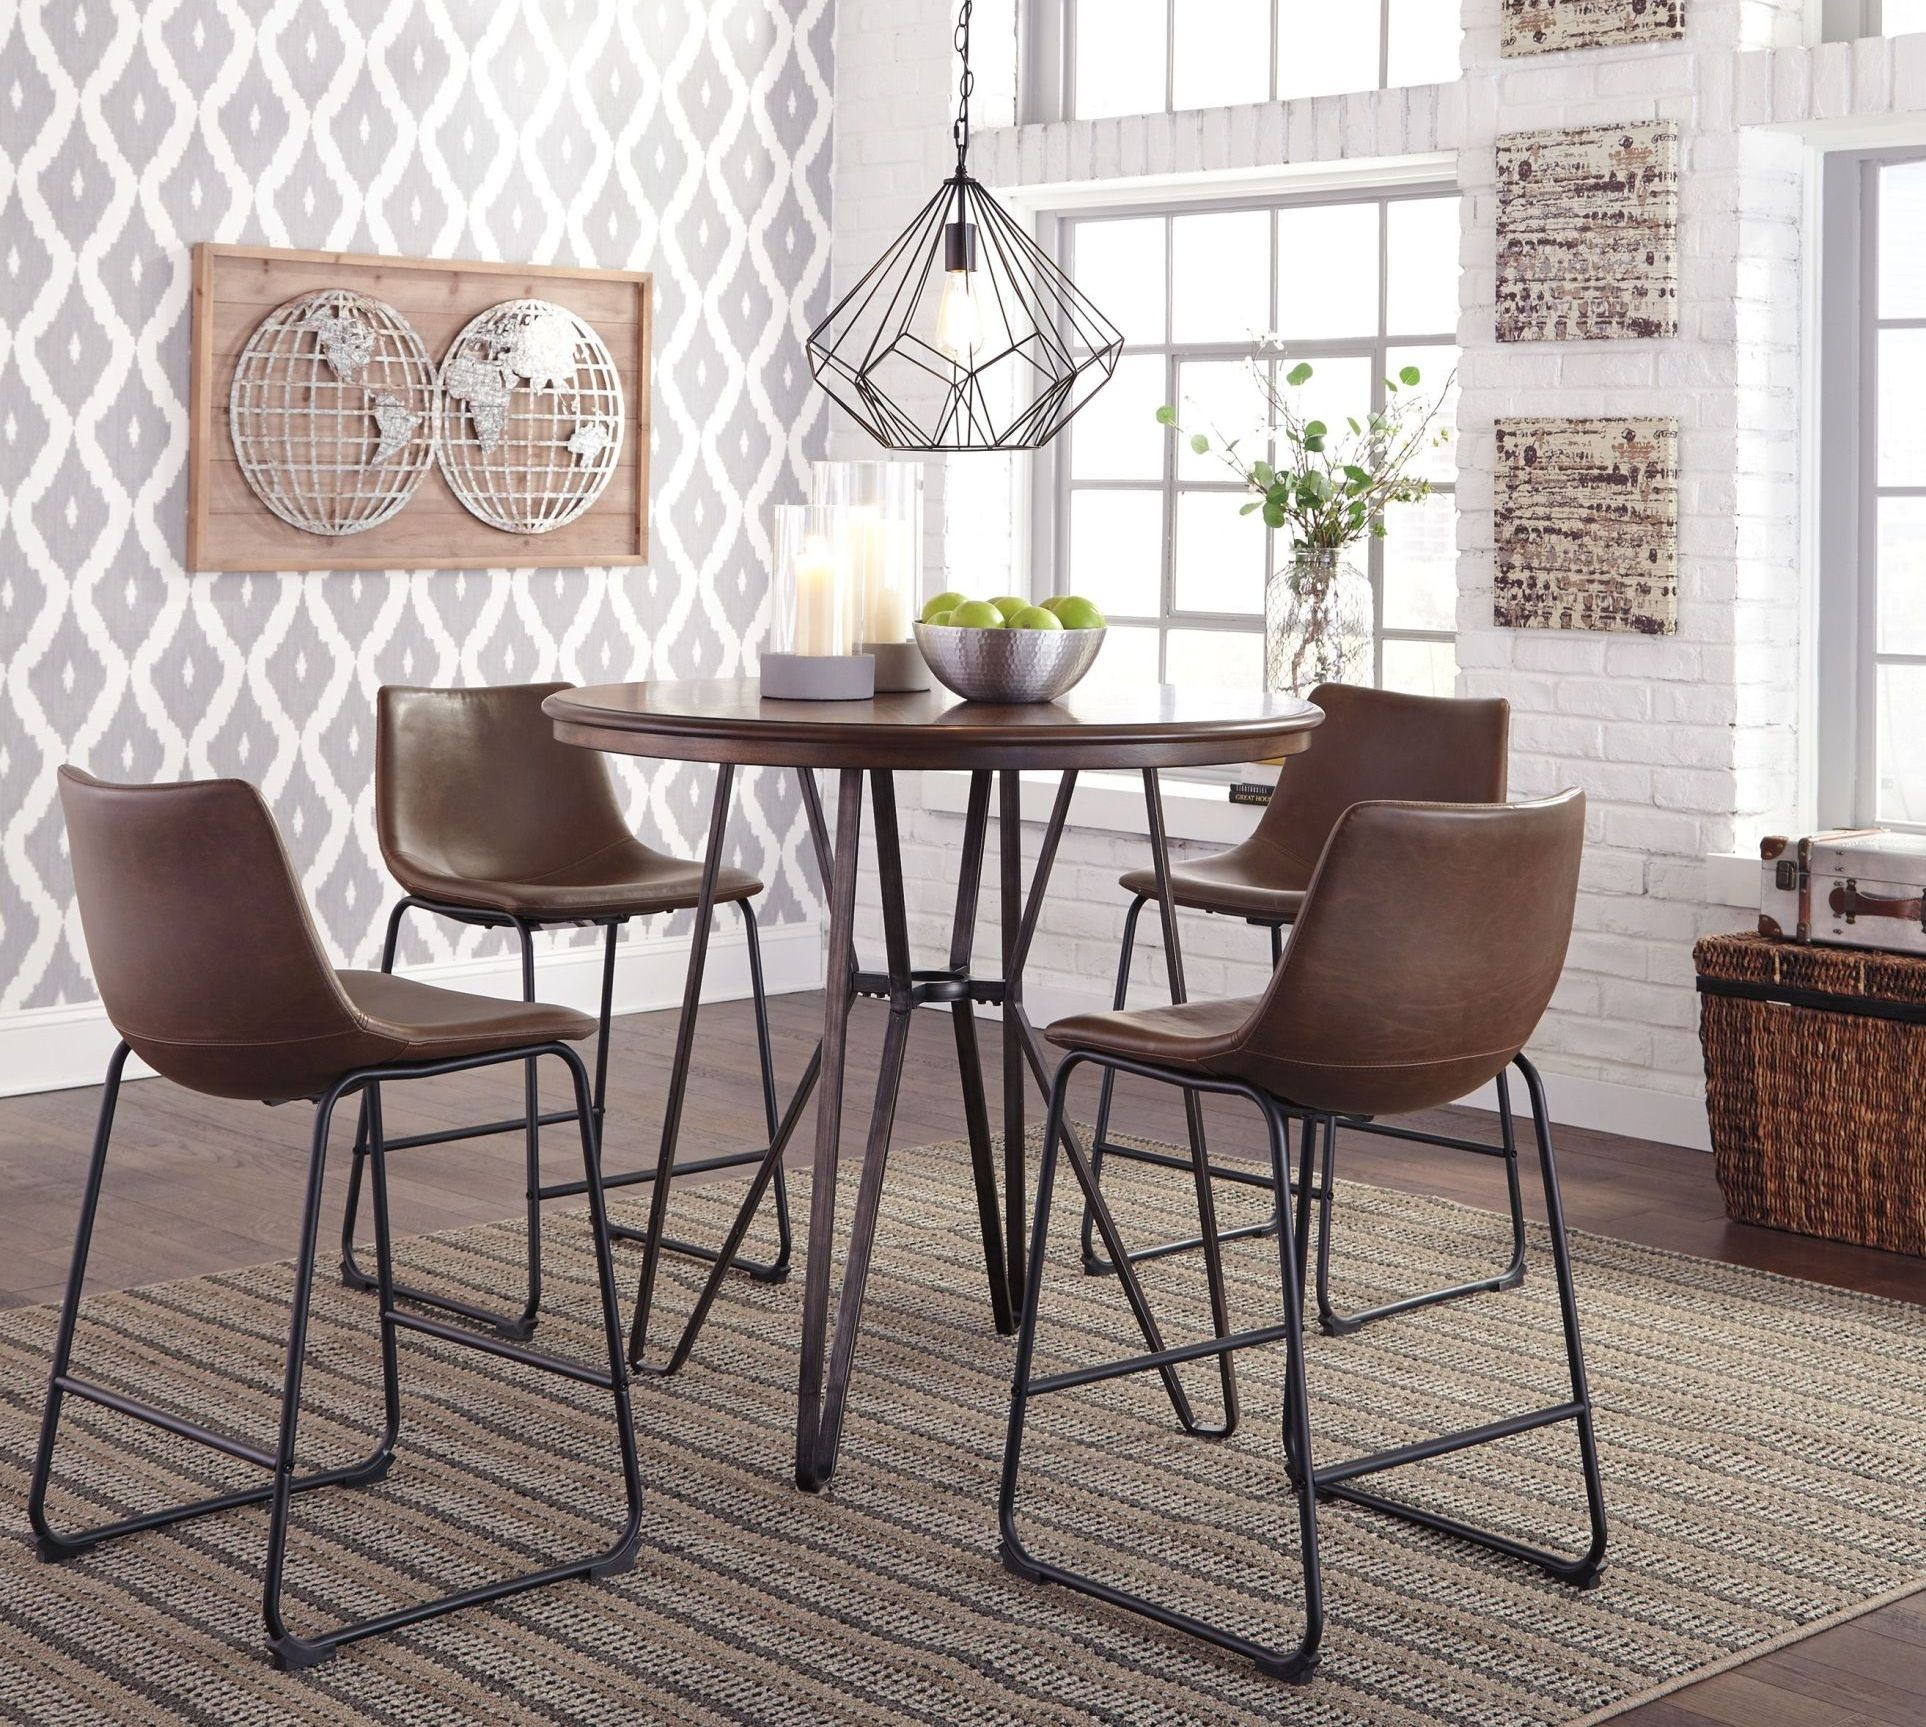 2 Tone Dining Room Sets Of Centiar Two Tone Brown Round Counter Height Dining Room